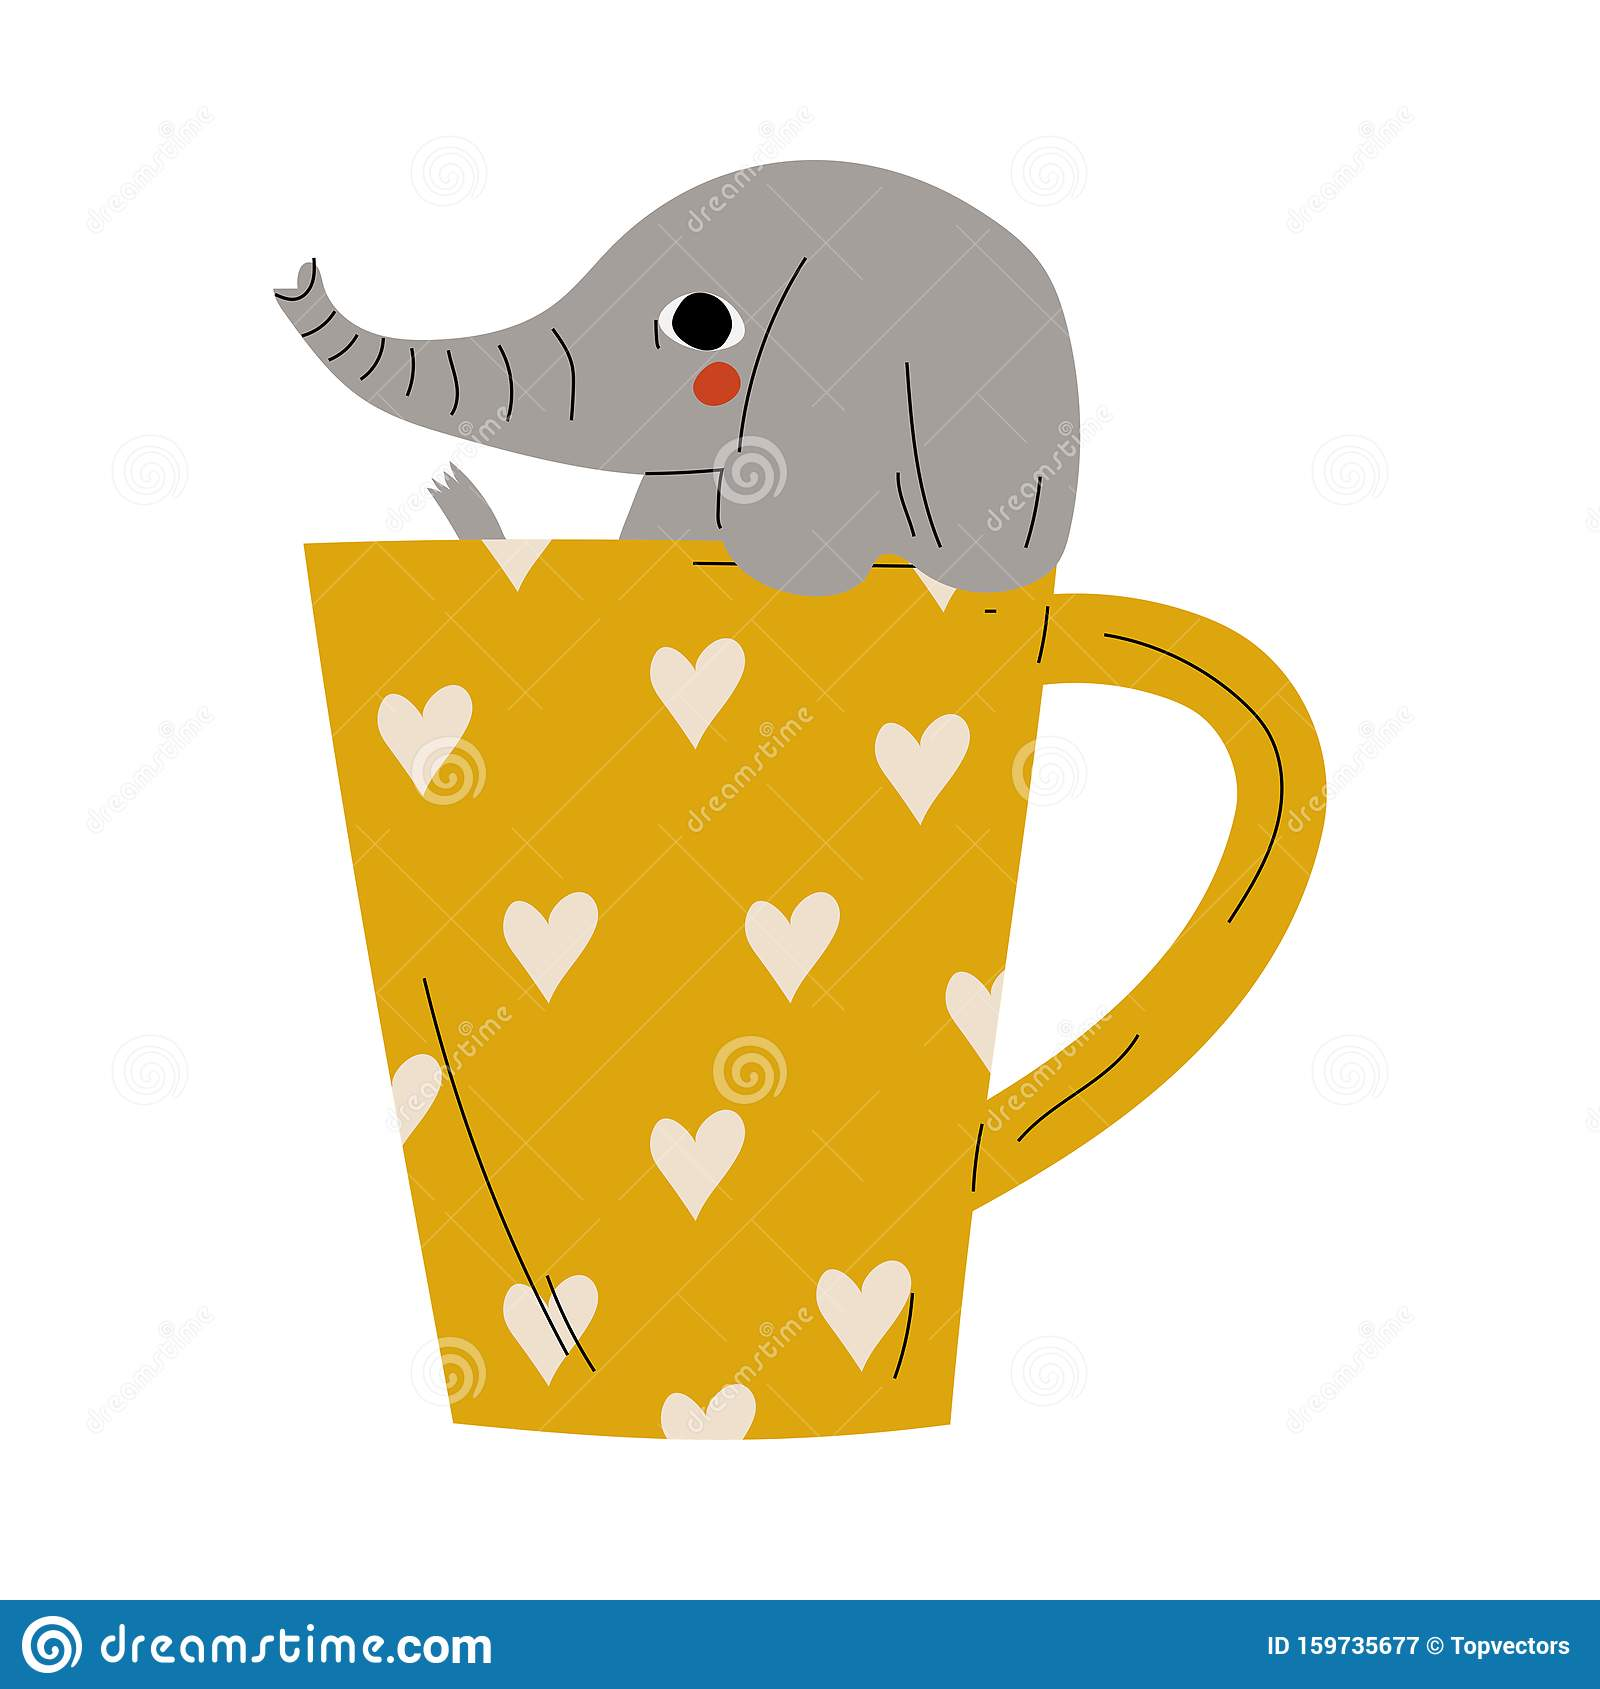 Cute Elephant In Yellow Teacup Adorable Little Cartoon Animal Character Sitting In Coffee Mug Vector Illustration Stock Vector Illustration Of Friendship Heart 159735677